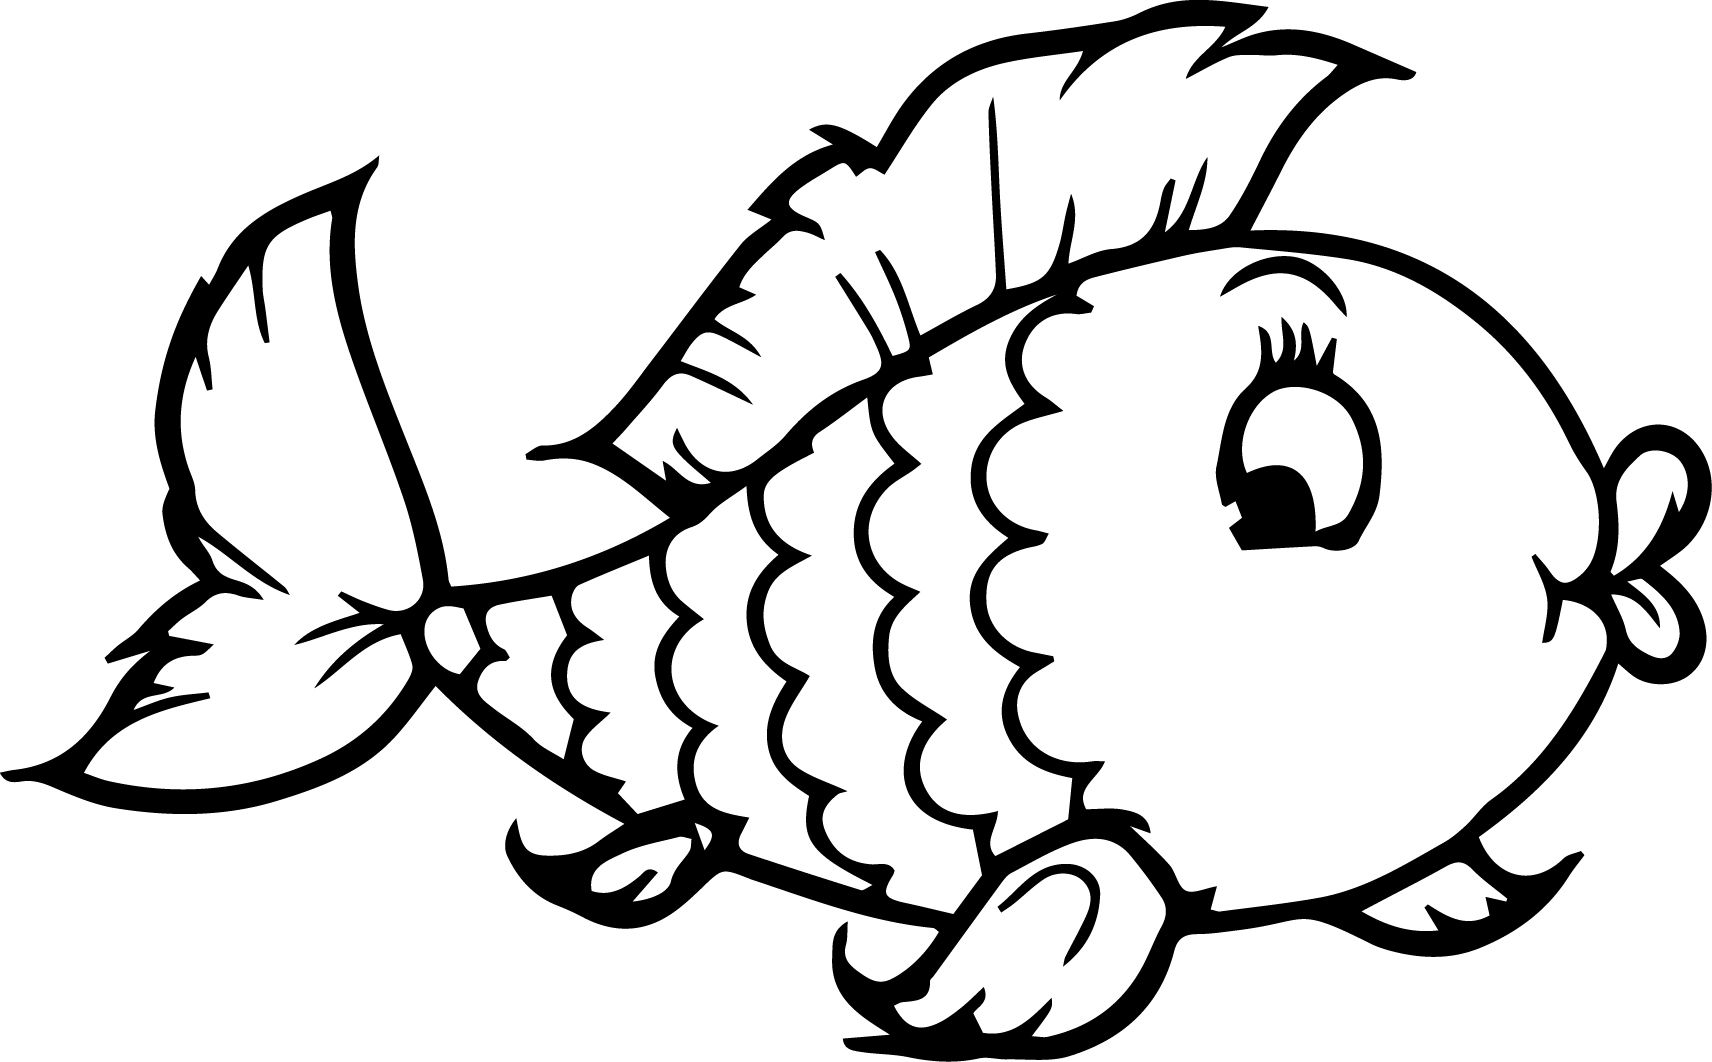 Cartoon coloring pages image by Pradeep Gamage on Google